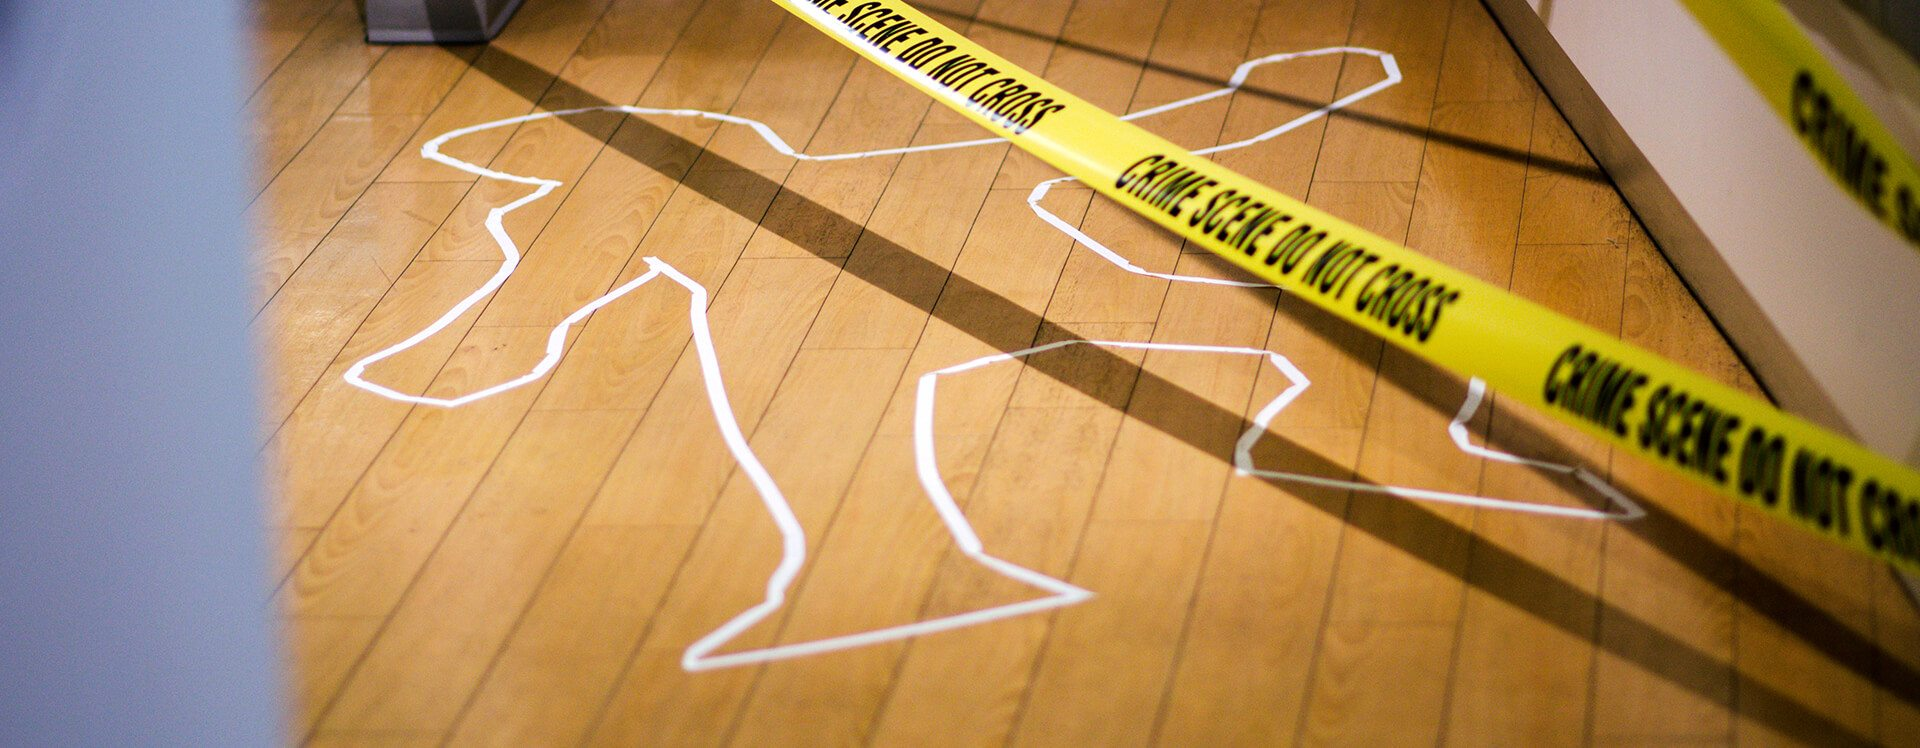 Blog post documenting the surprising parallels between a murder mystery and UX design